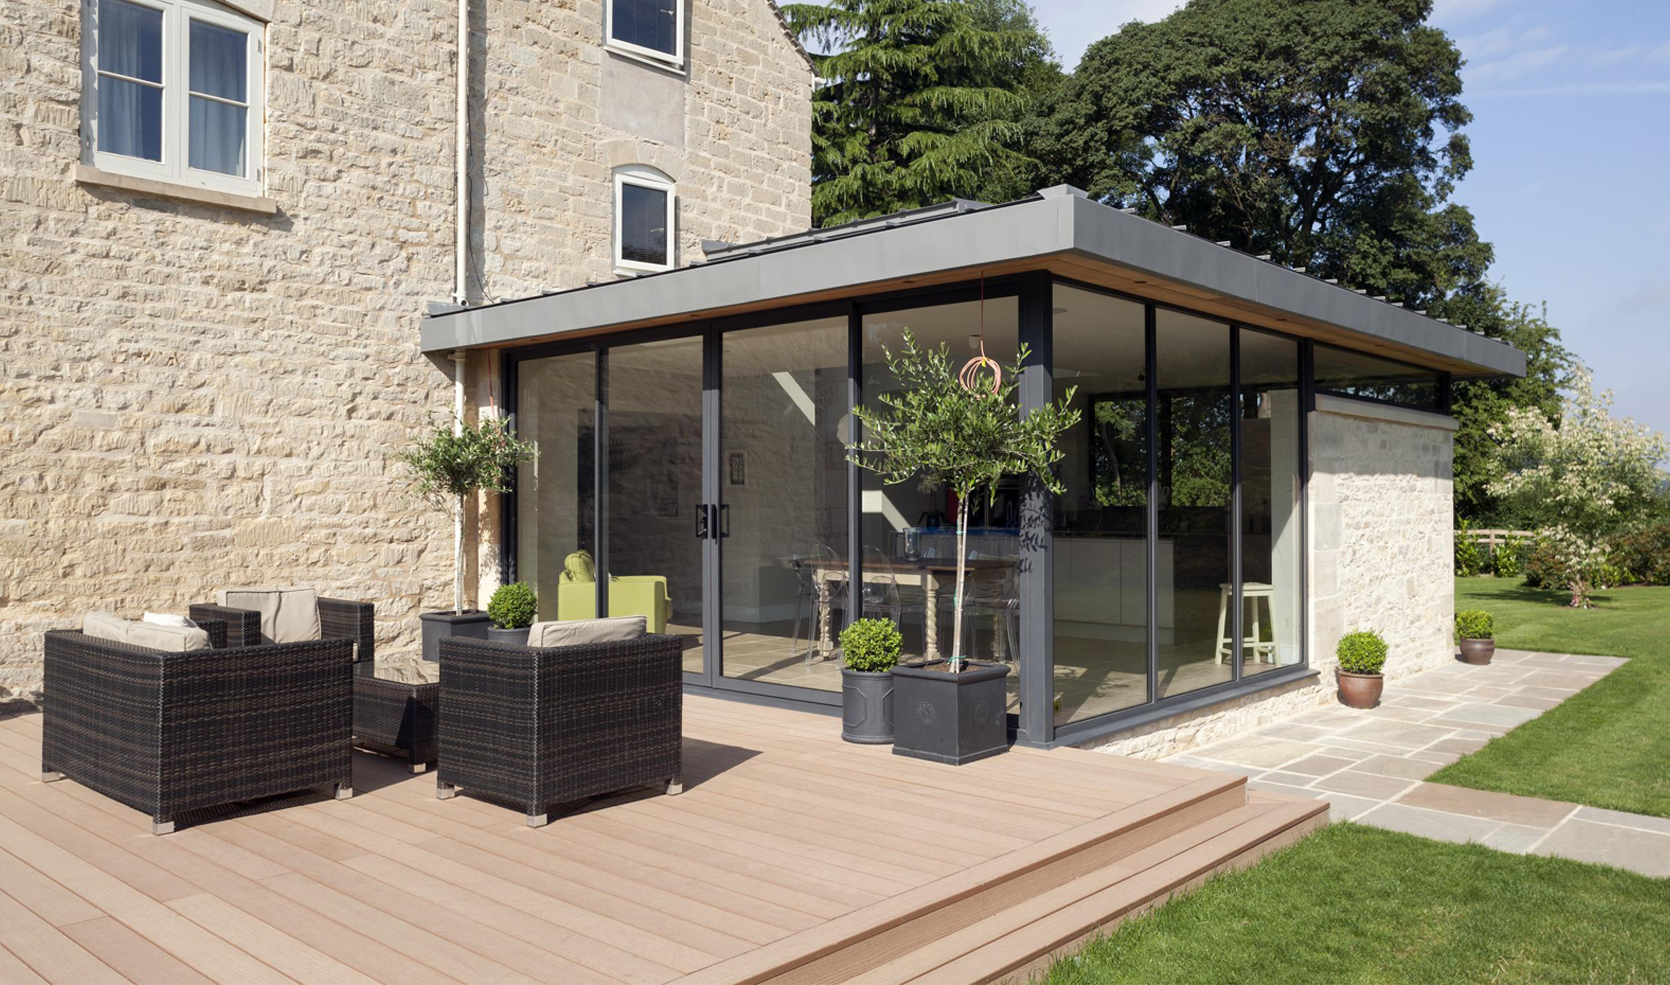 dark grey aluminium windows and doors on a modern home